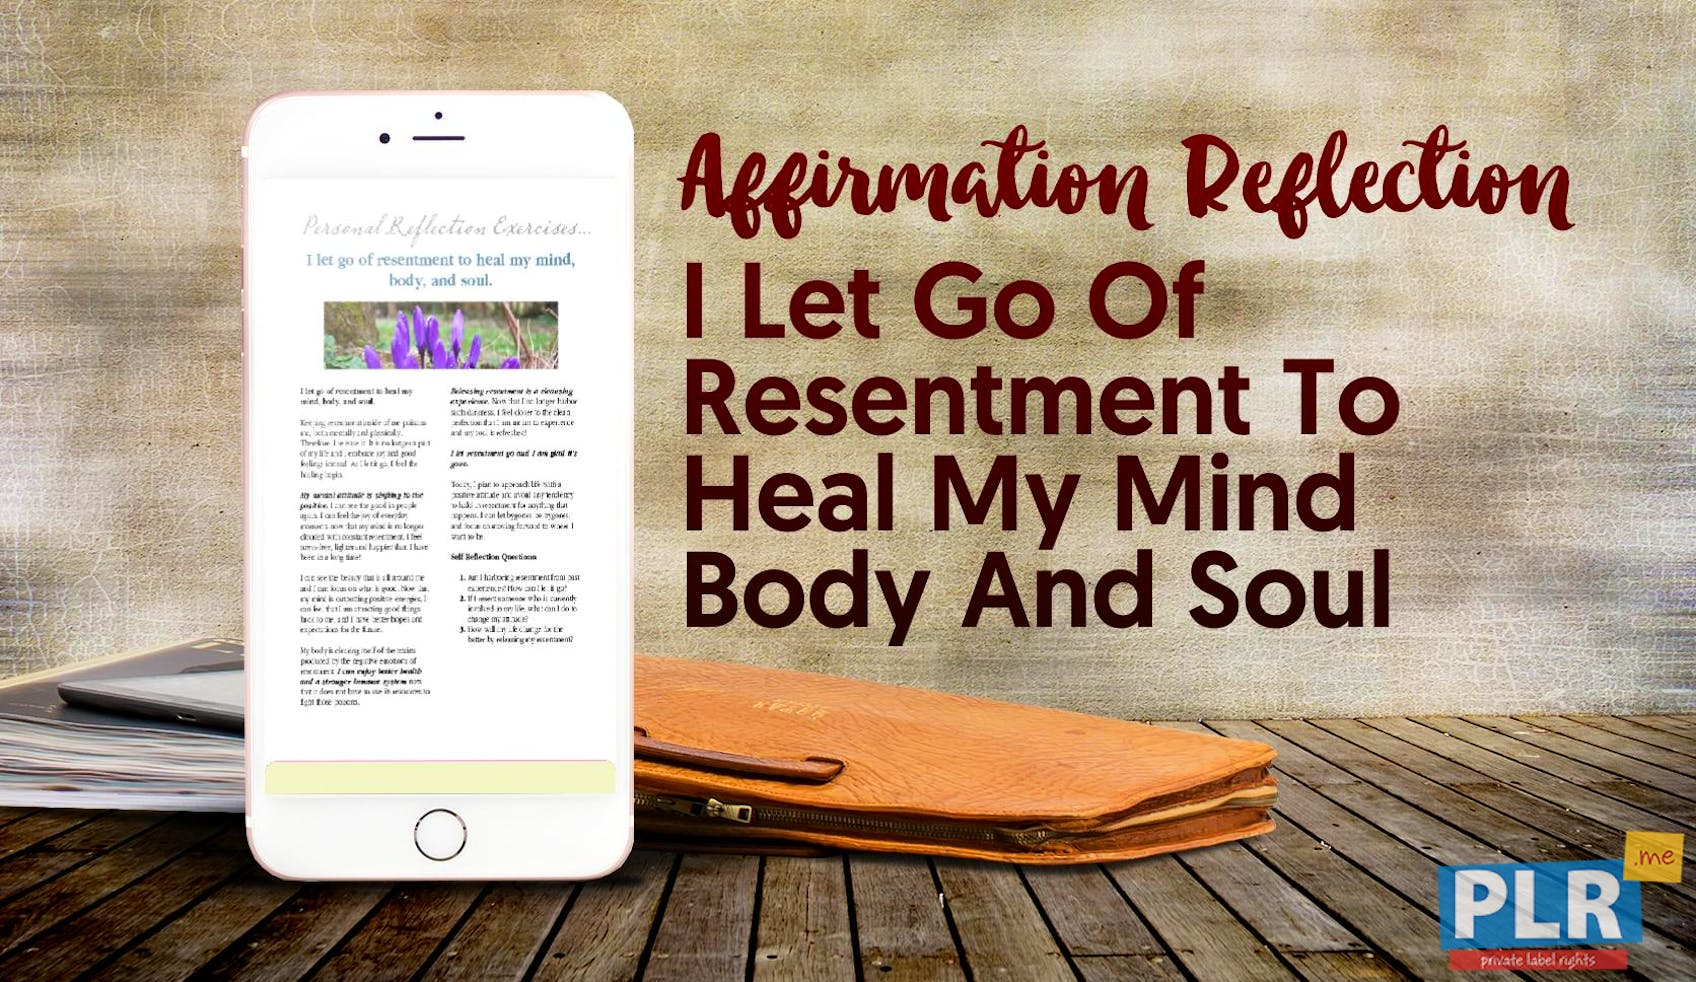 I Let Go Of Resentment To Heal My Mind Body And Soul